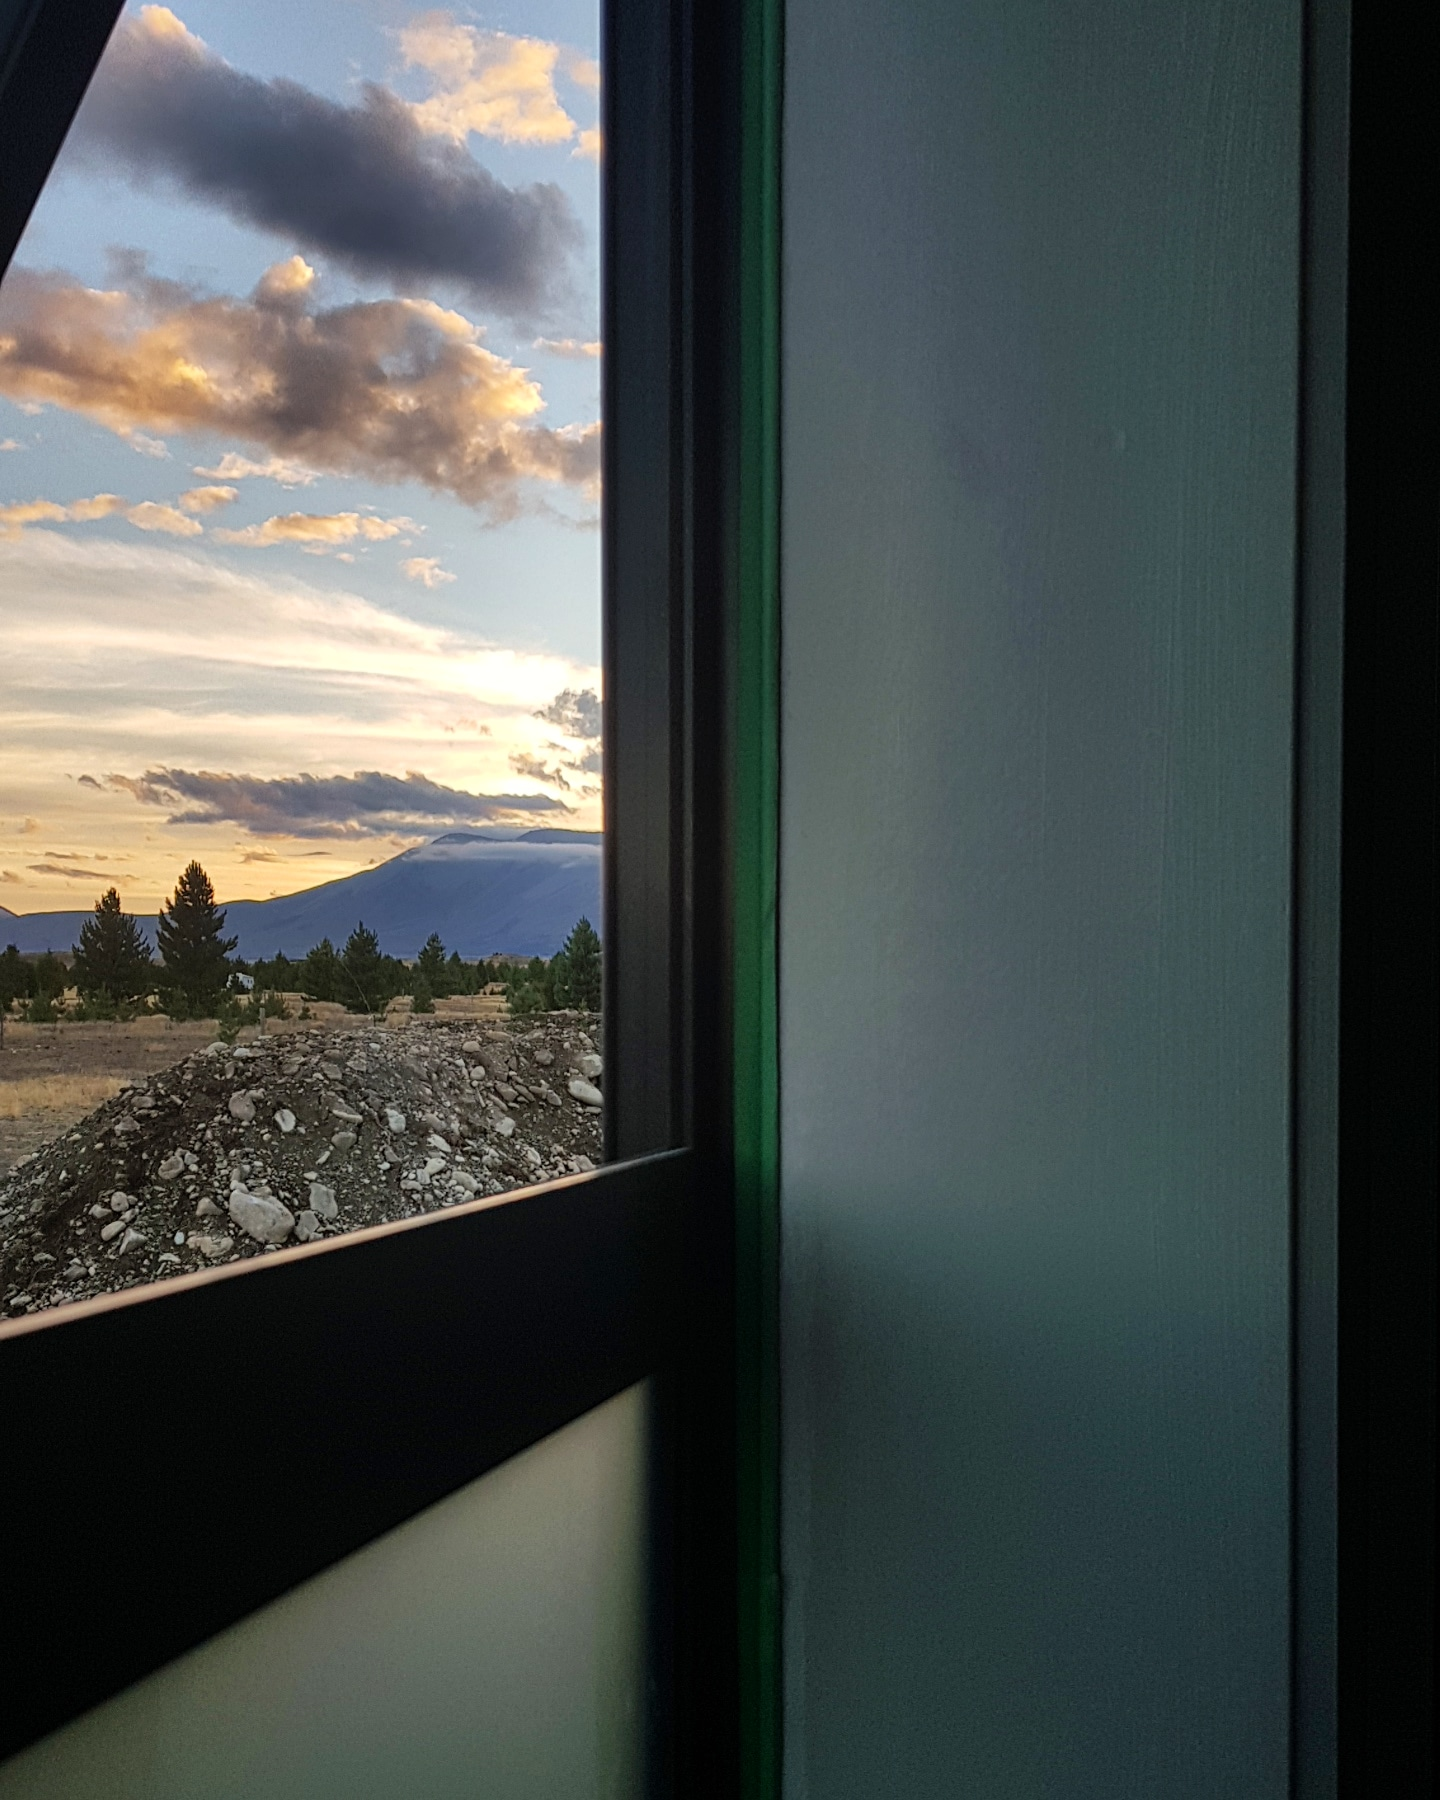 16/03/2019 Sunset views as we finished painting the bedroom wing.